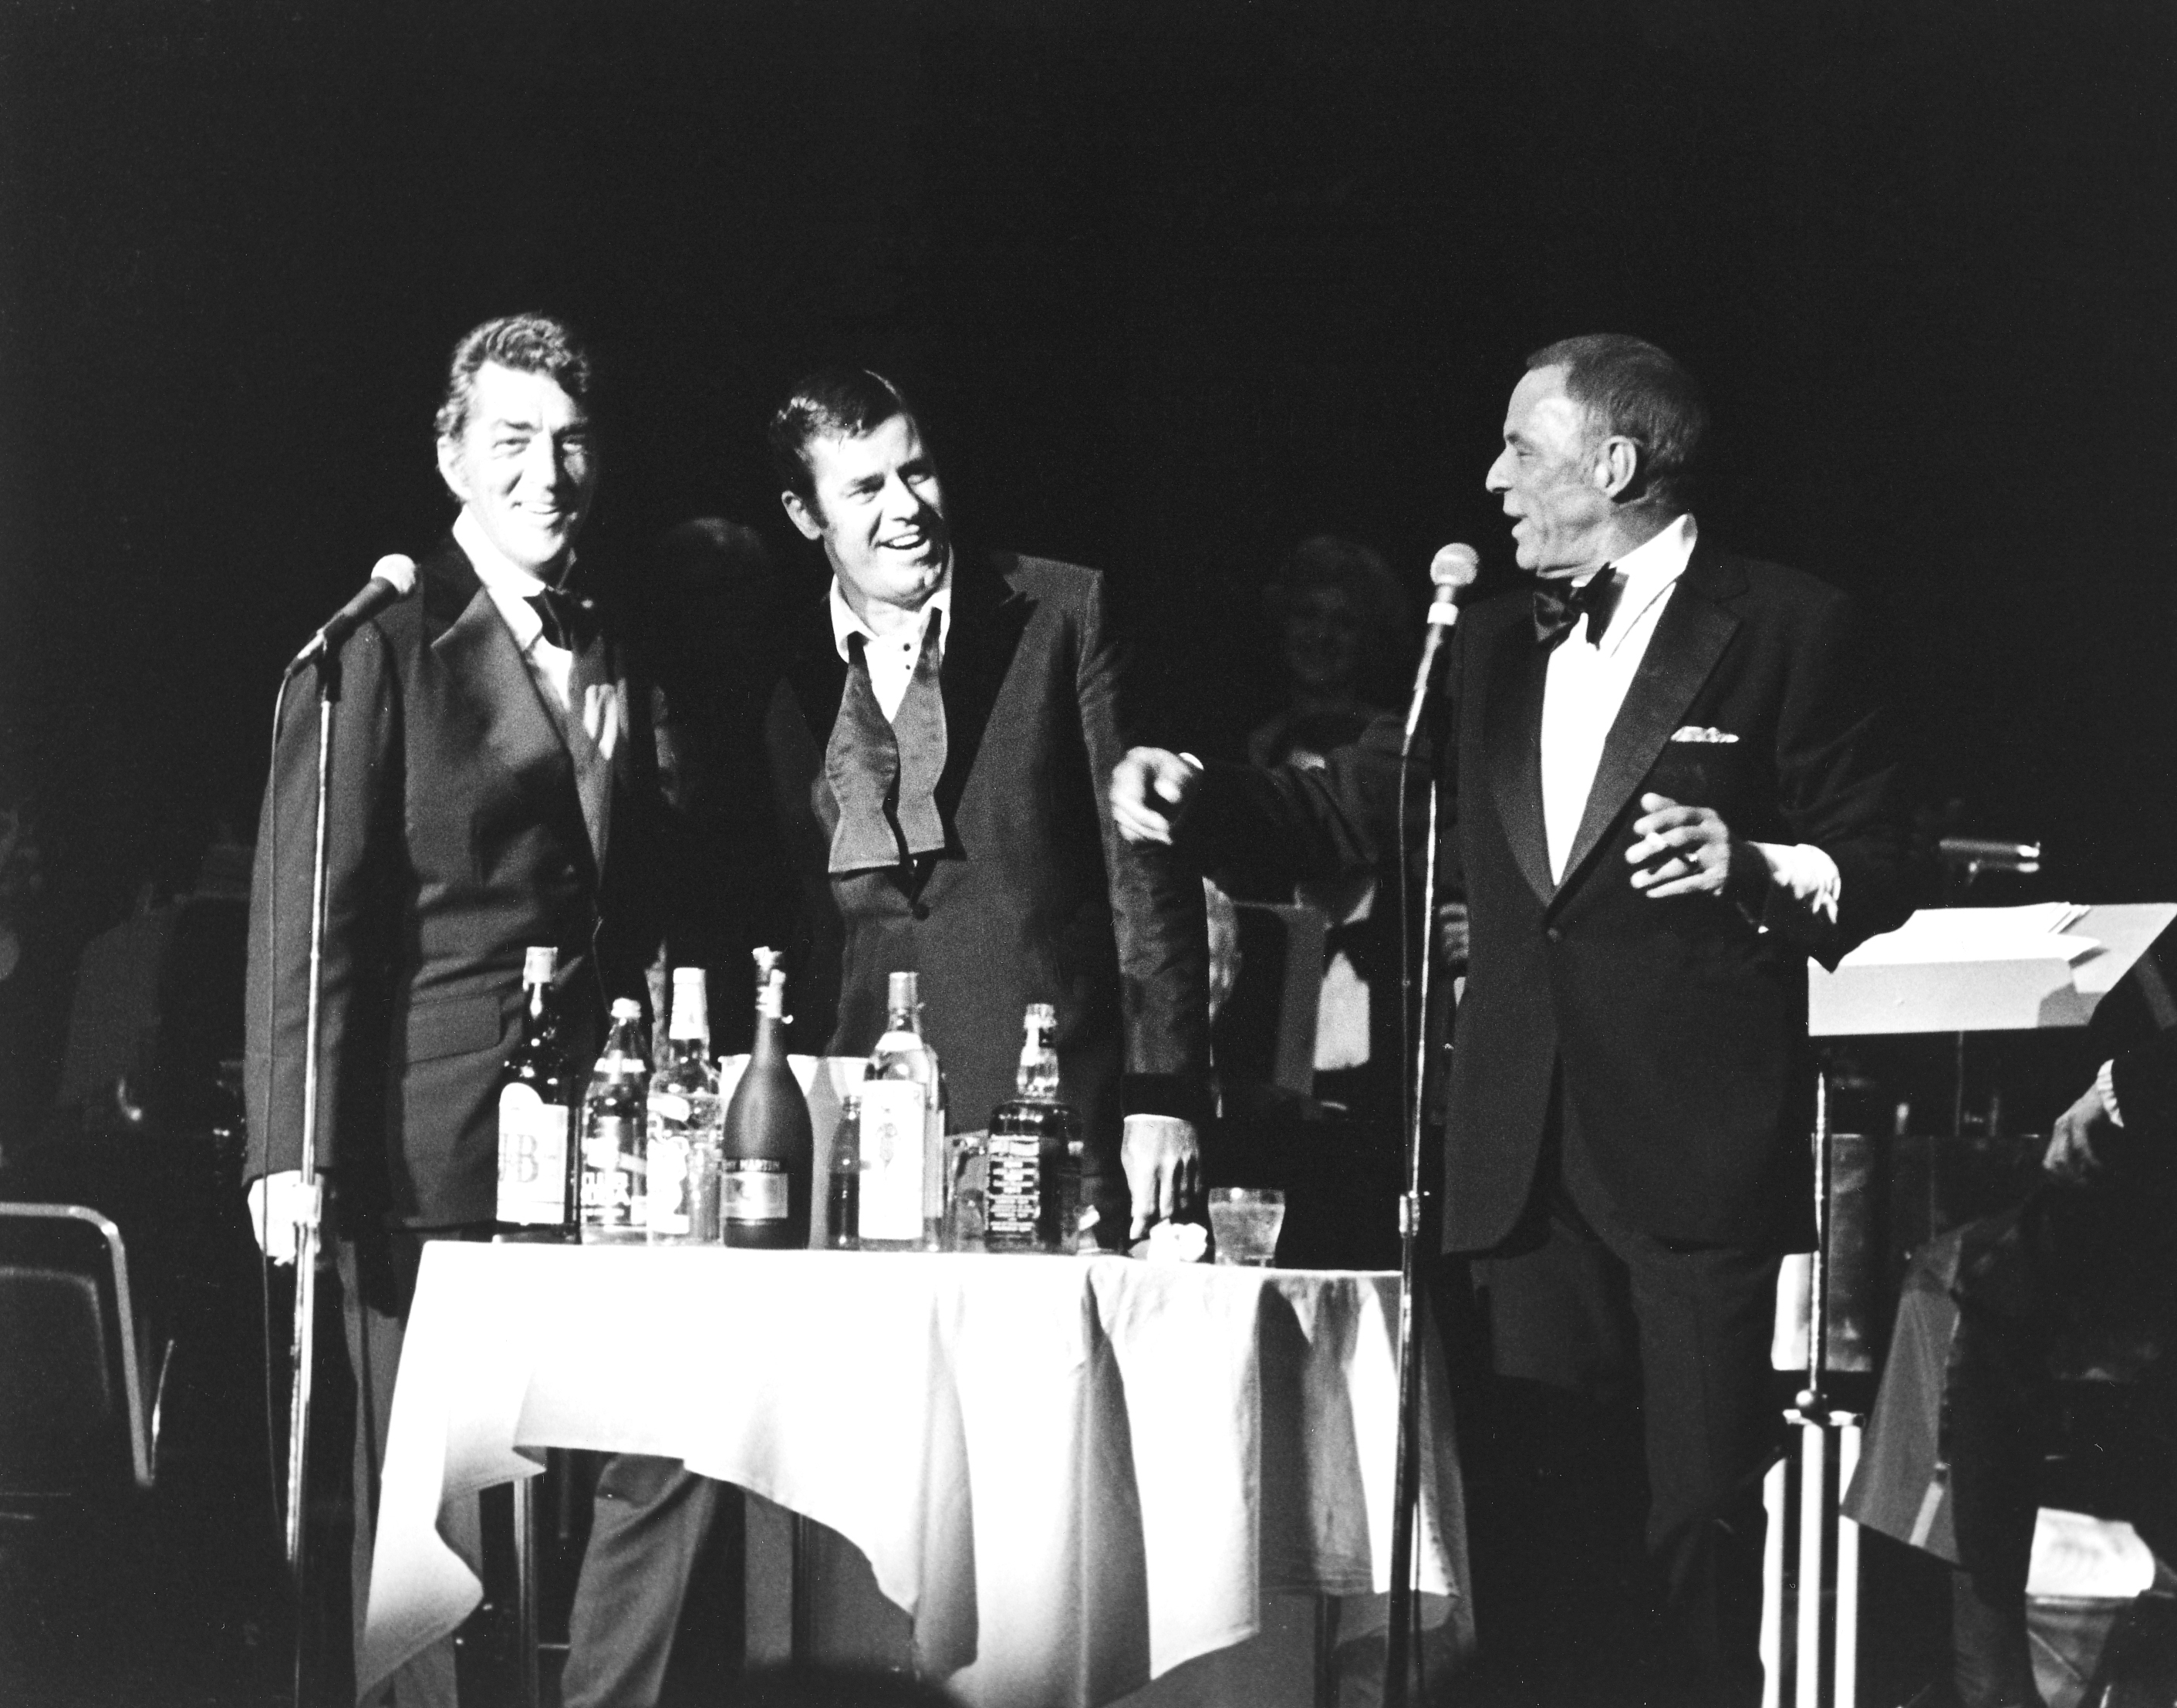 Dean Martin, Jerry Lewis, Frank Sinatra at the Aladdin 08/23/77